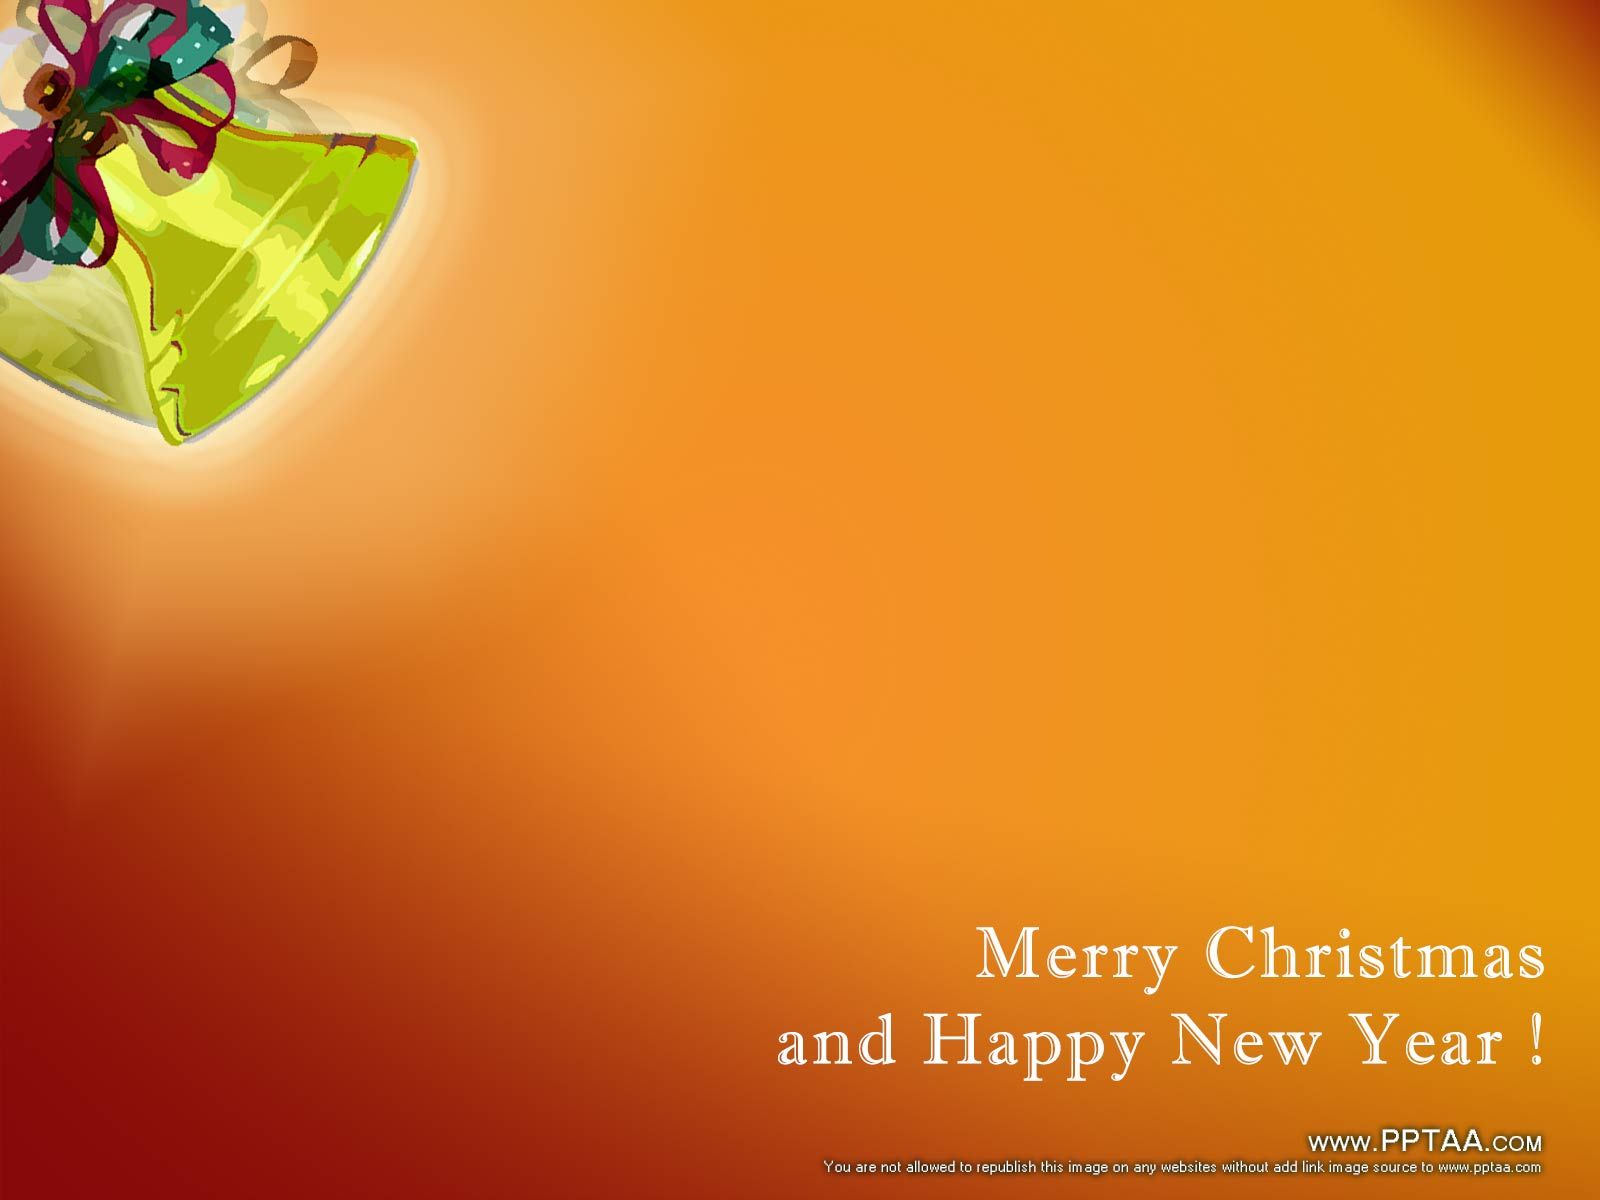 Merry christmas background template pptaa a powerpoint background template with merry christmas alramifo Image collections